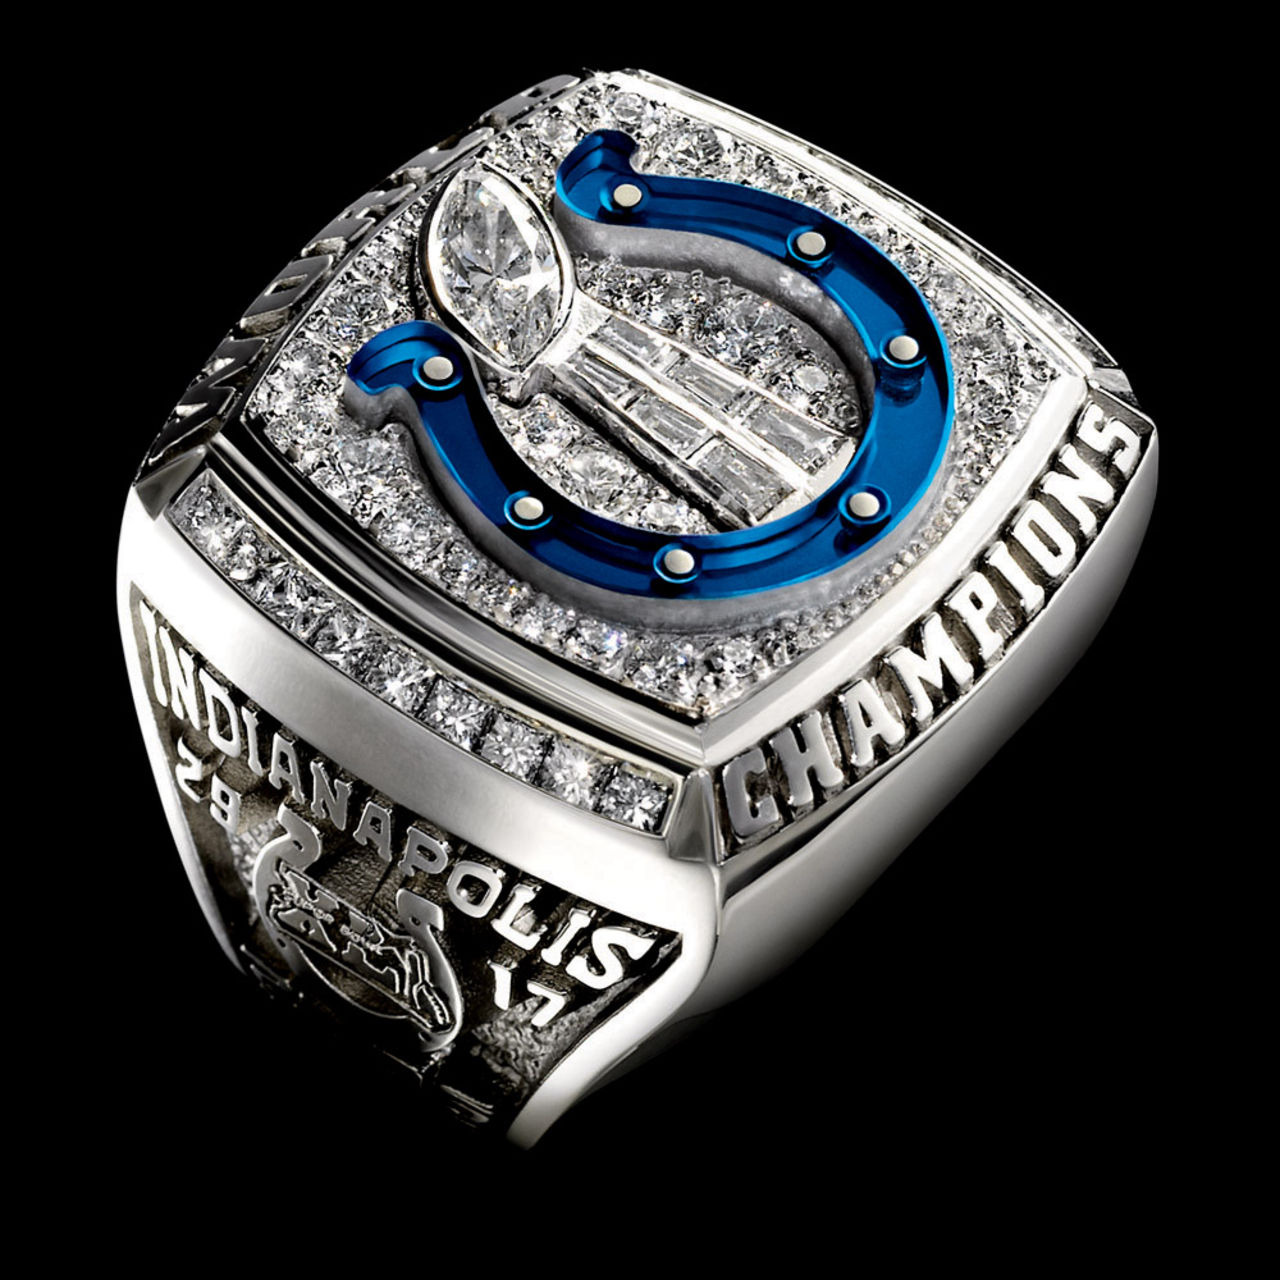 featured of photo com and galleries the gallery rings essays photos nfl